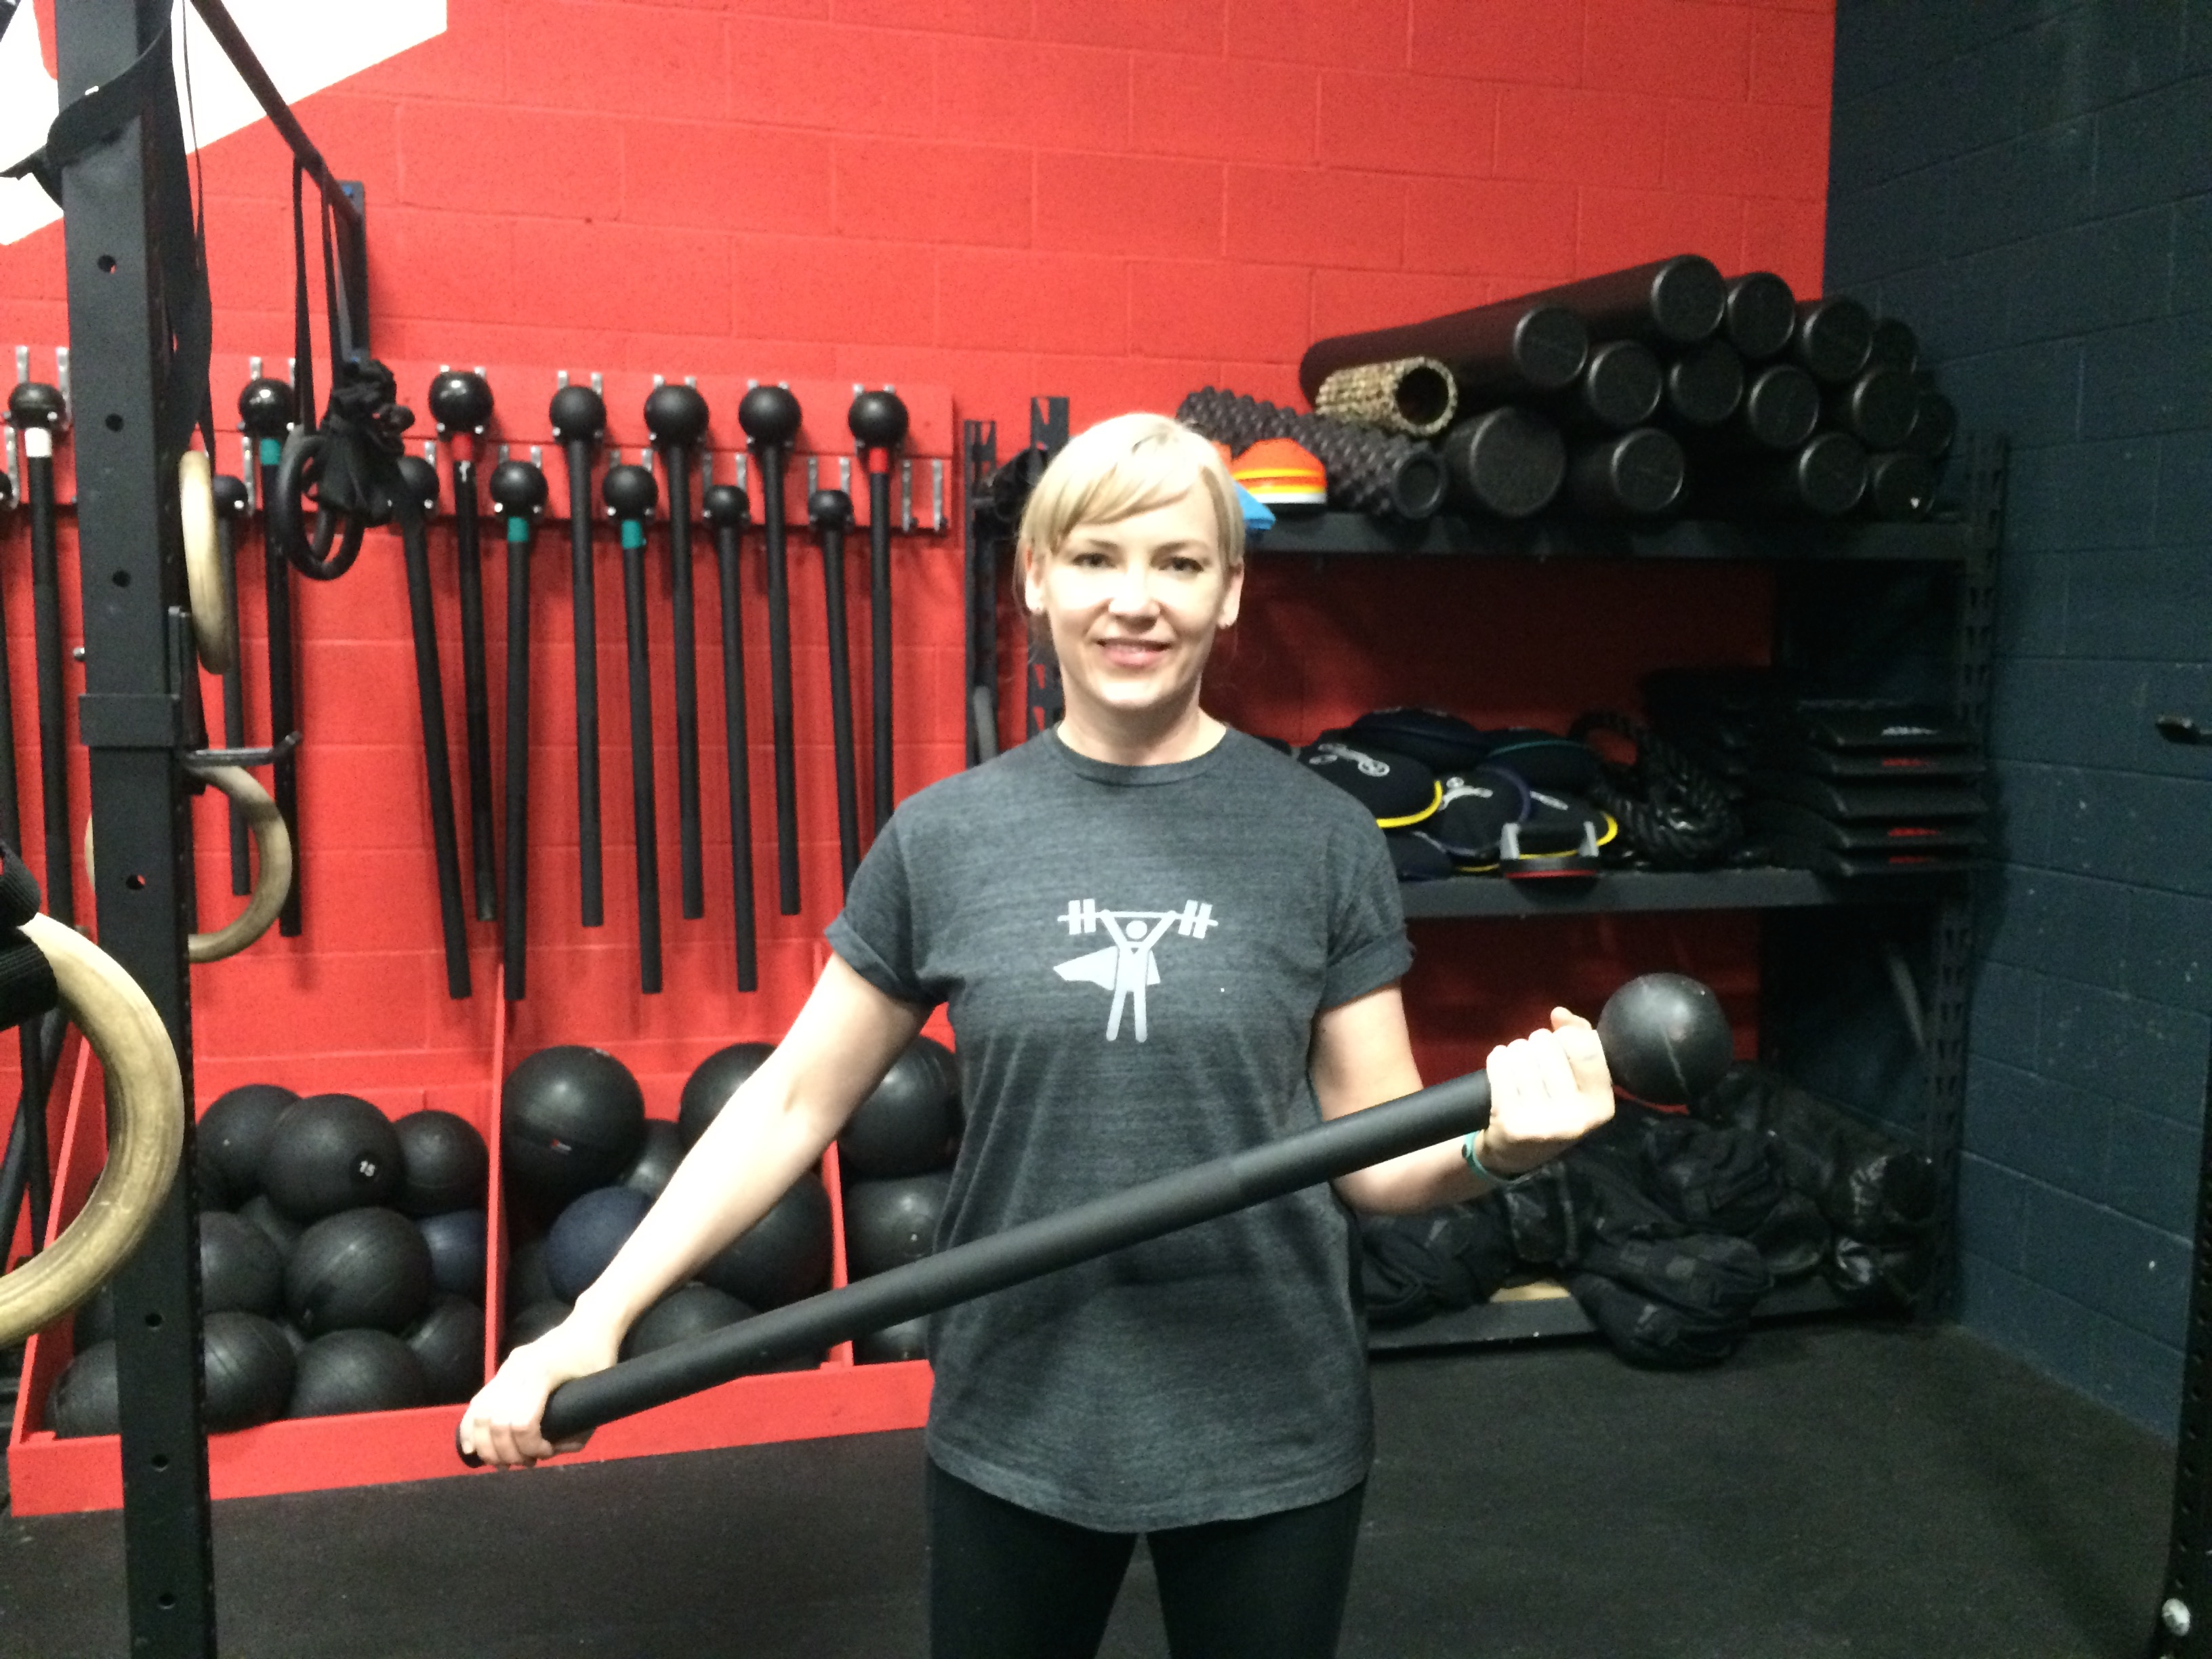 Nerdstrong gym helps geeks level up their fitness u withings